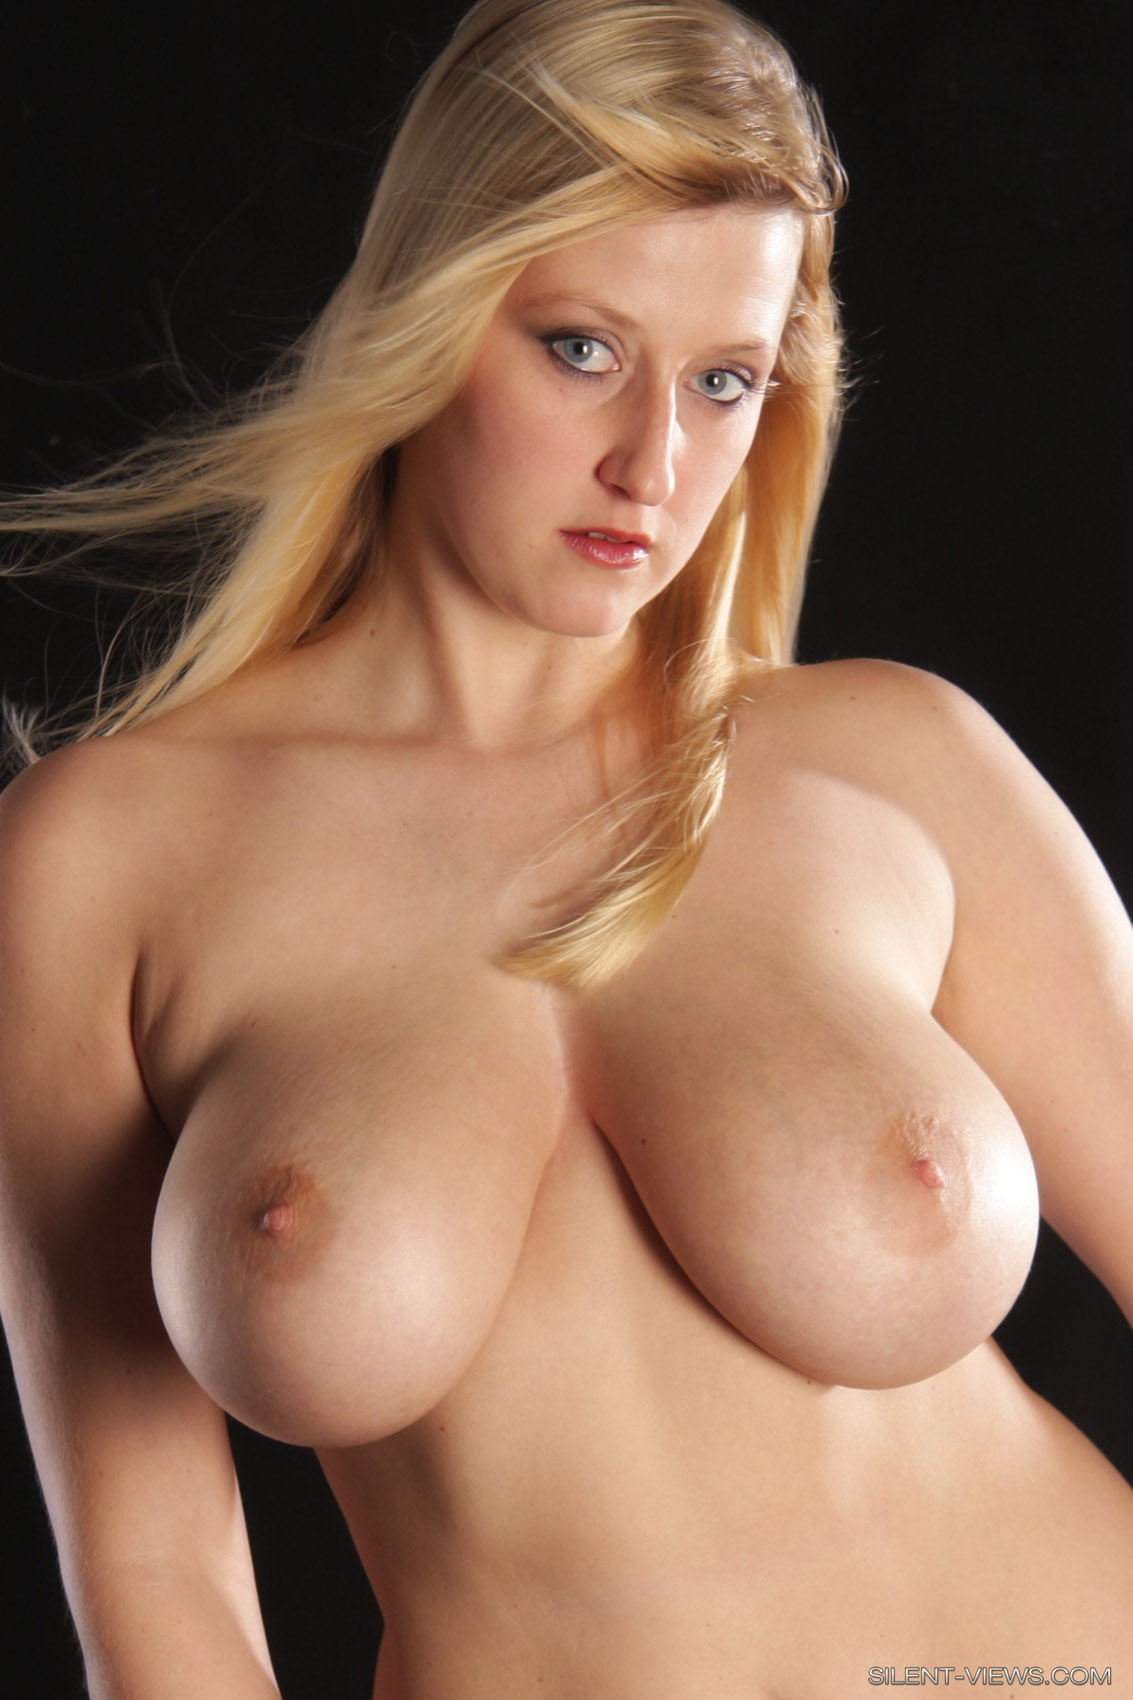 Ally Tall And Busty Model - Foxhq-4540